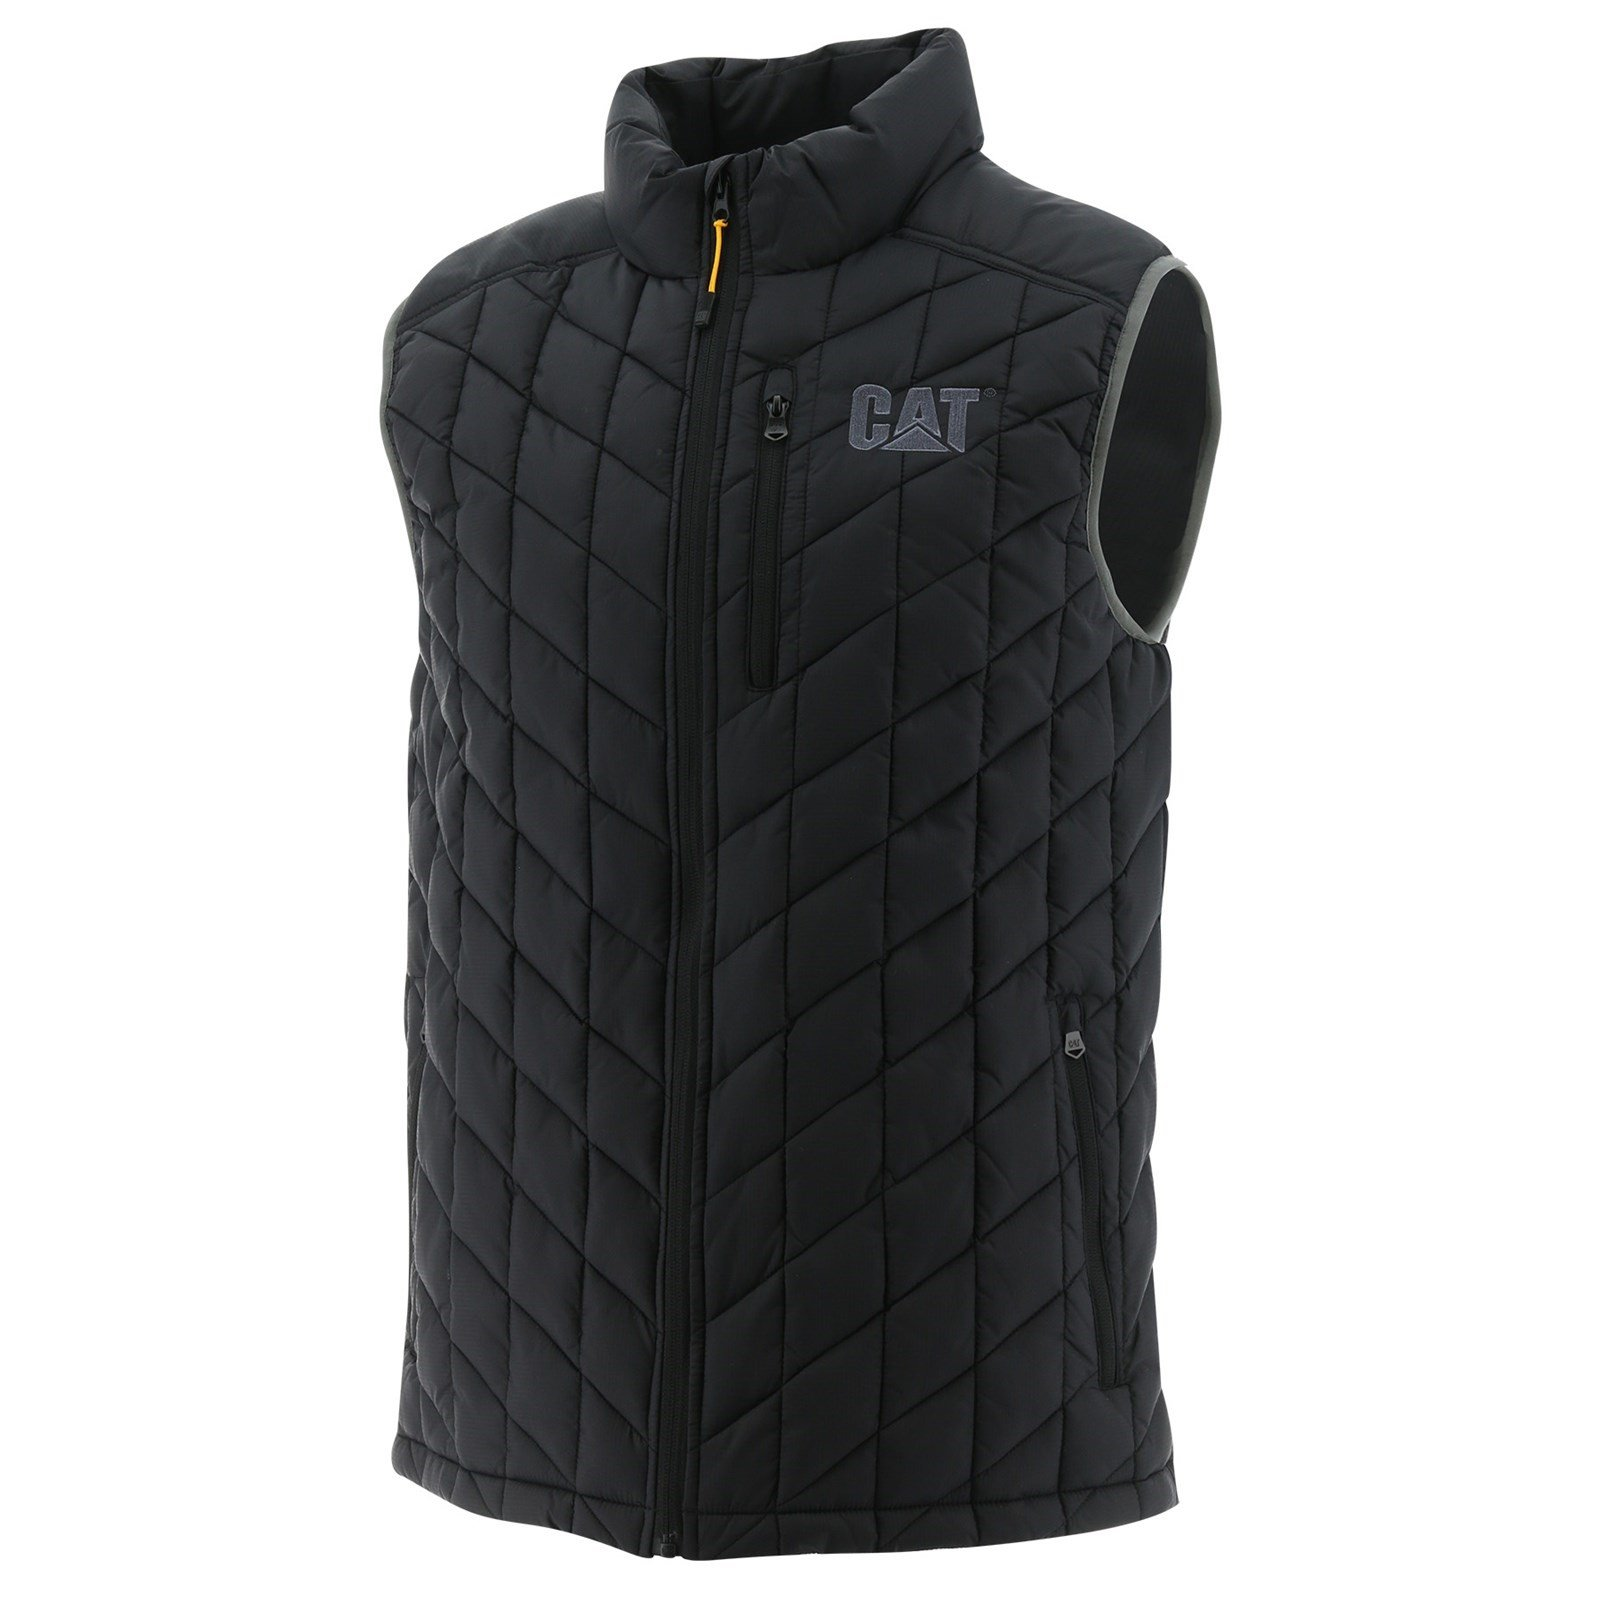 Caterpillar Unisex Insulated Jacket Various Colours 33824 - Black Charcoal Sml